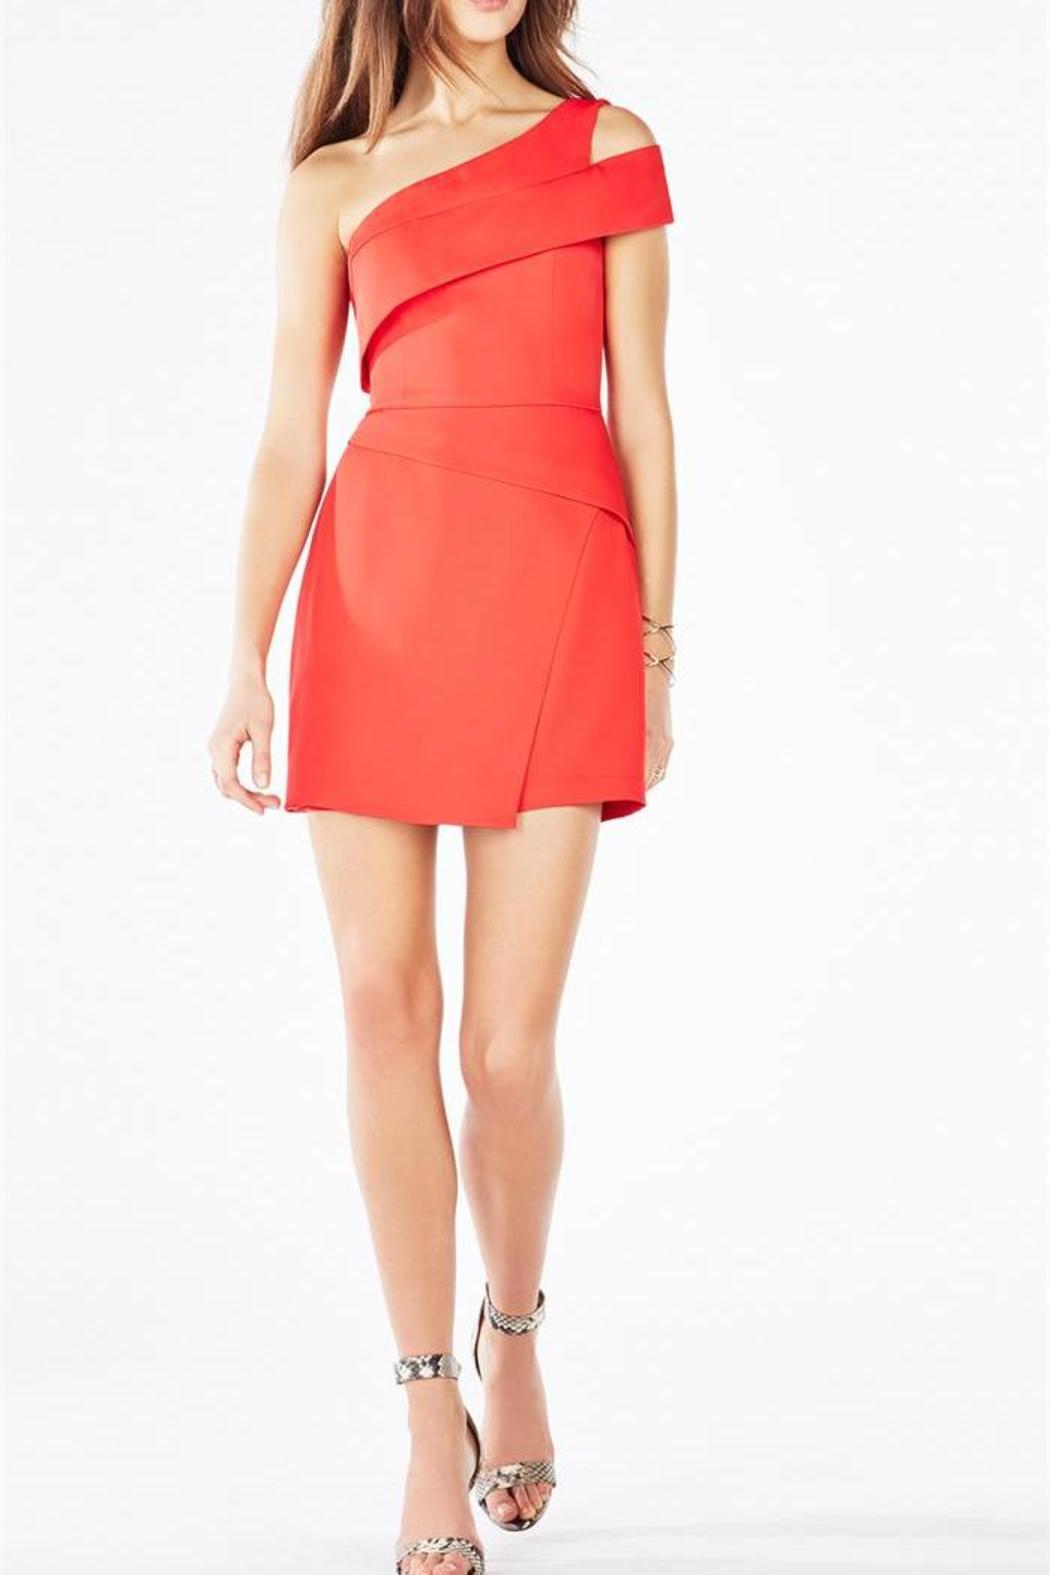 Bcbg Max Azria Red One Shoulder Dress From Back Bay By Max